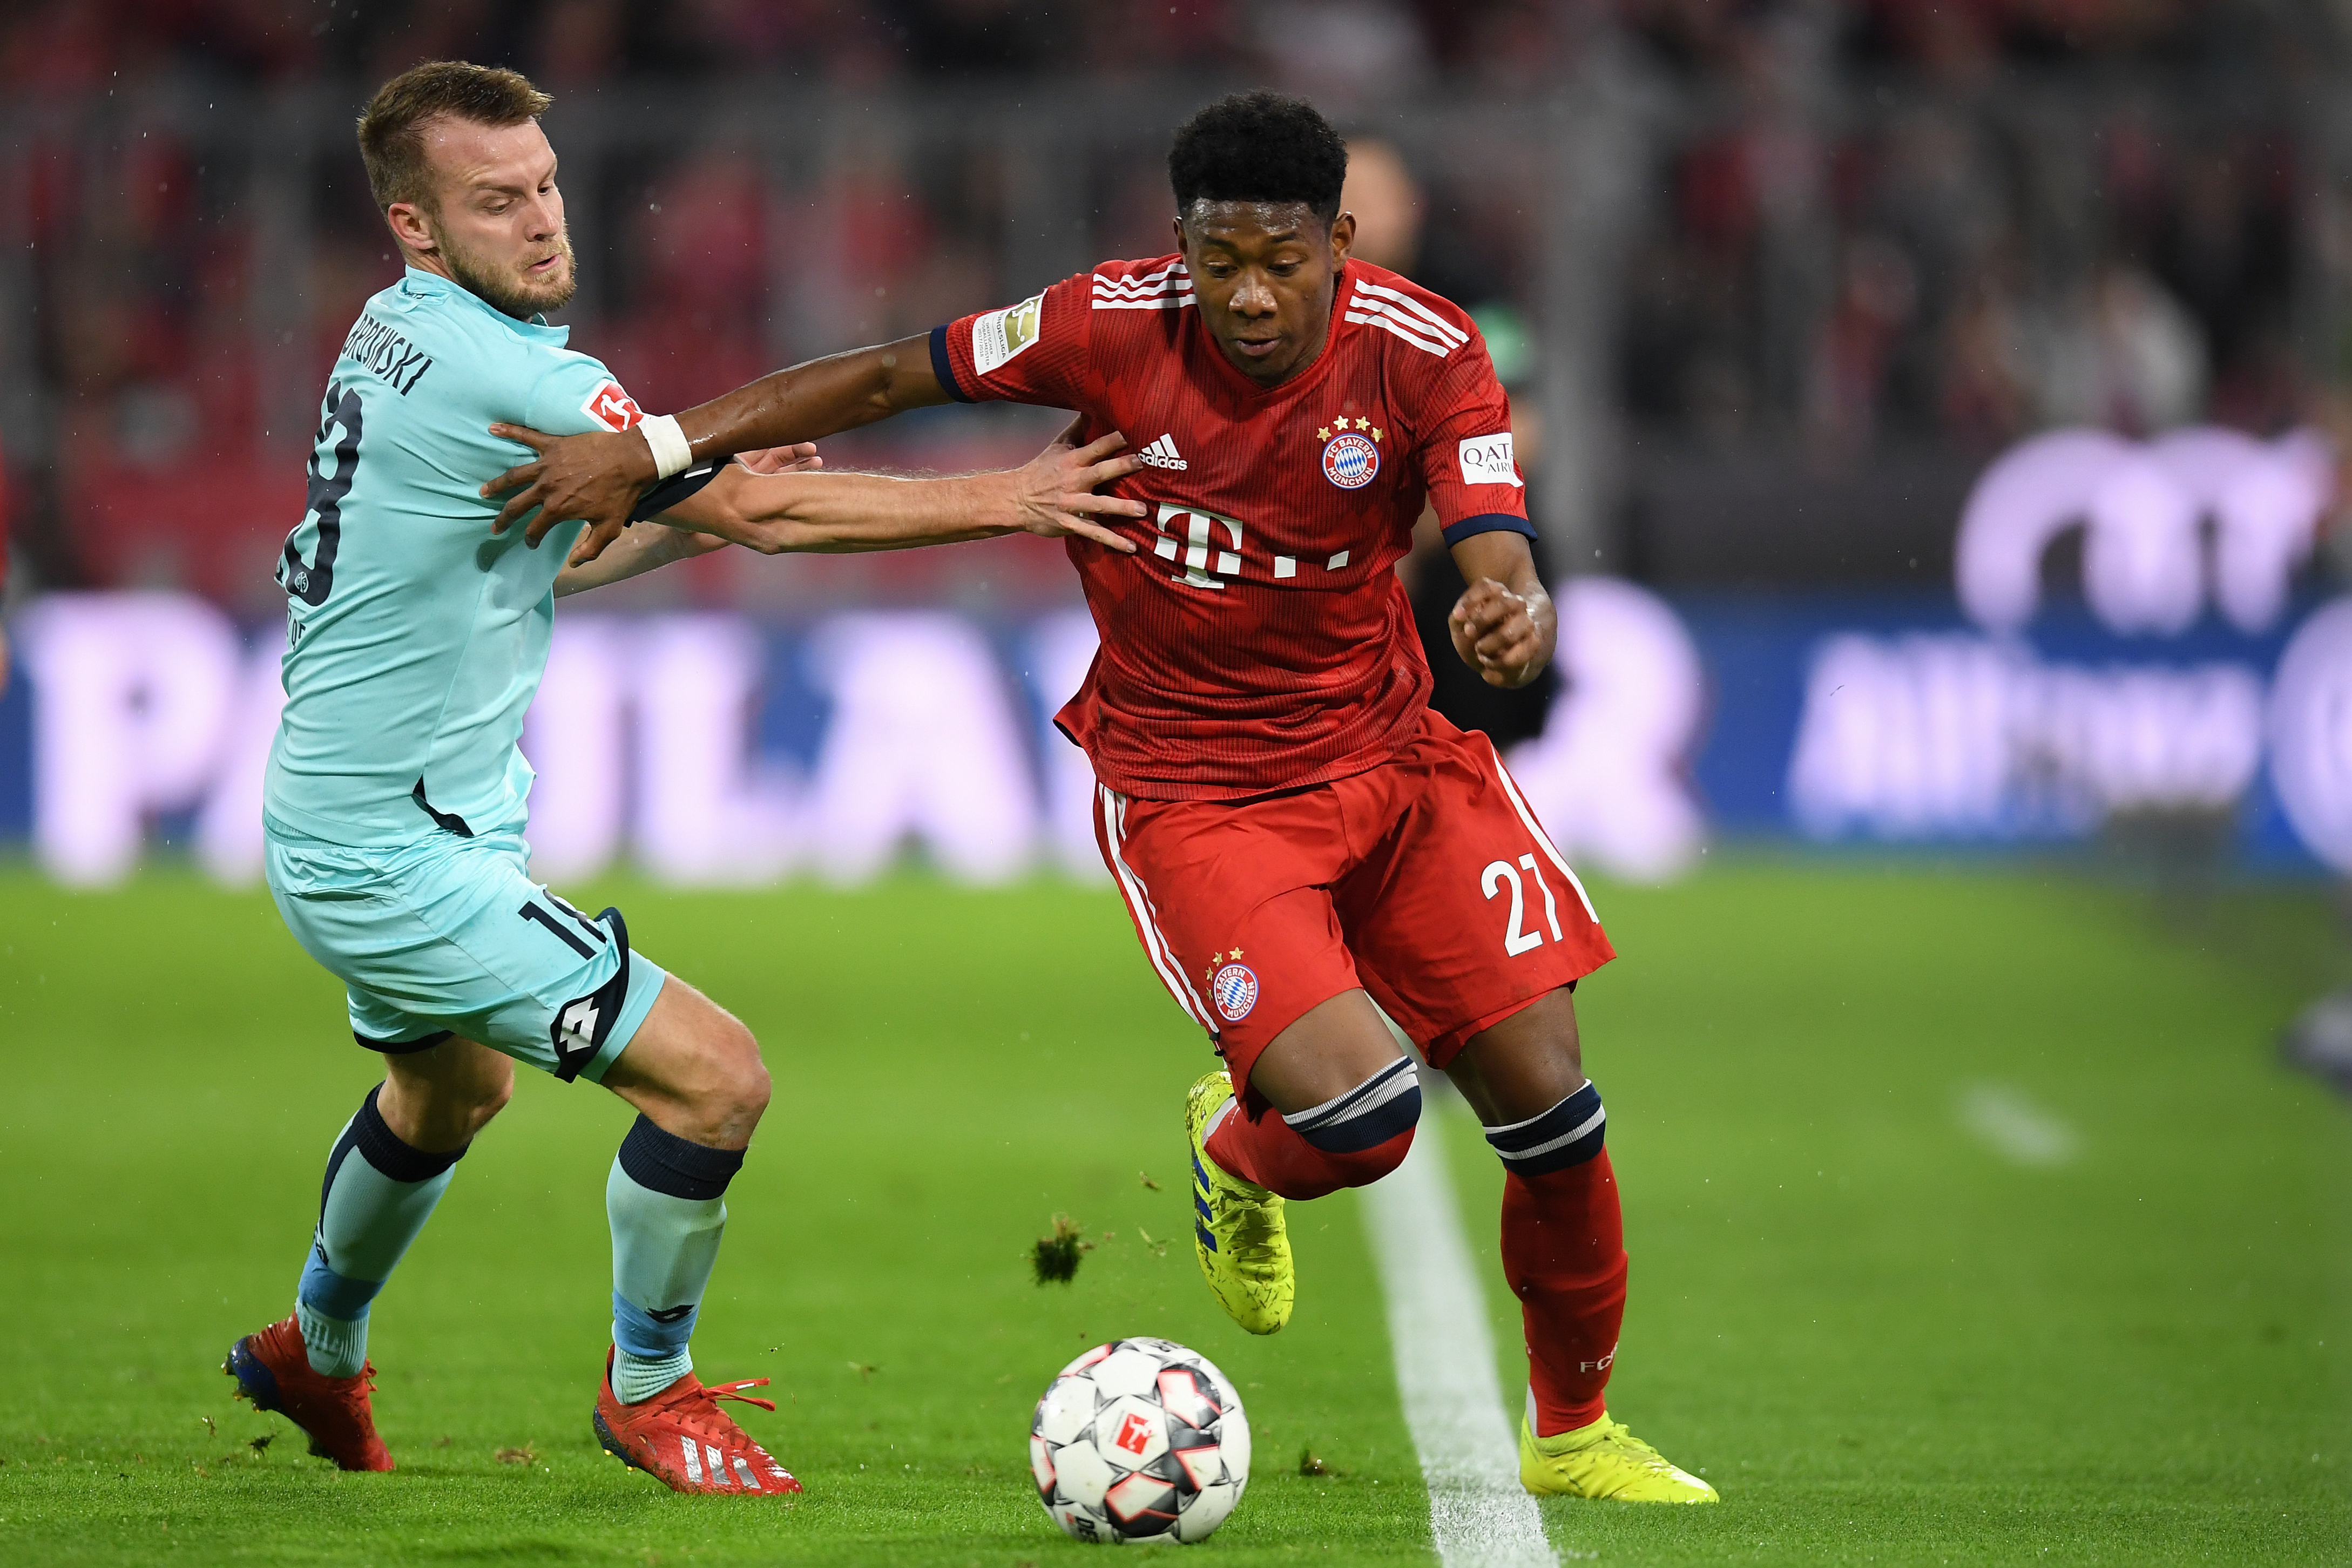 Alaba has been the first choice left-back at Bayern for years and now his place is under threat. (Photo courtesy: AFP/Getty)